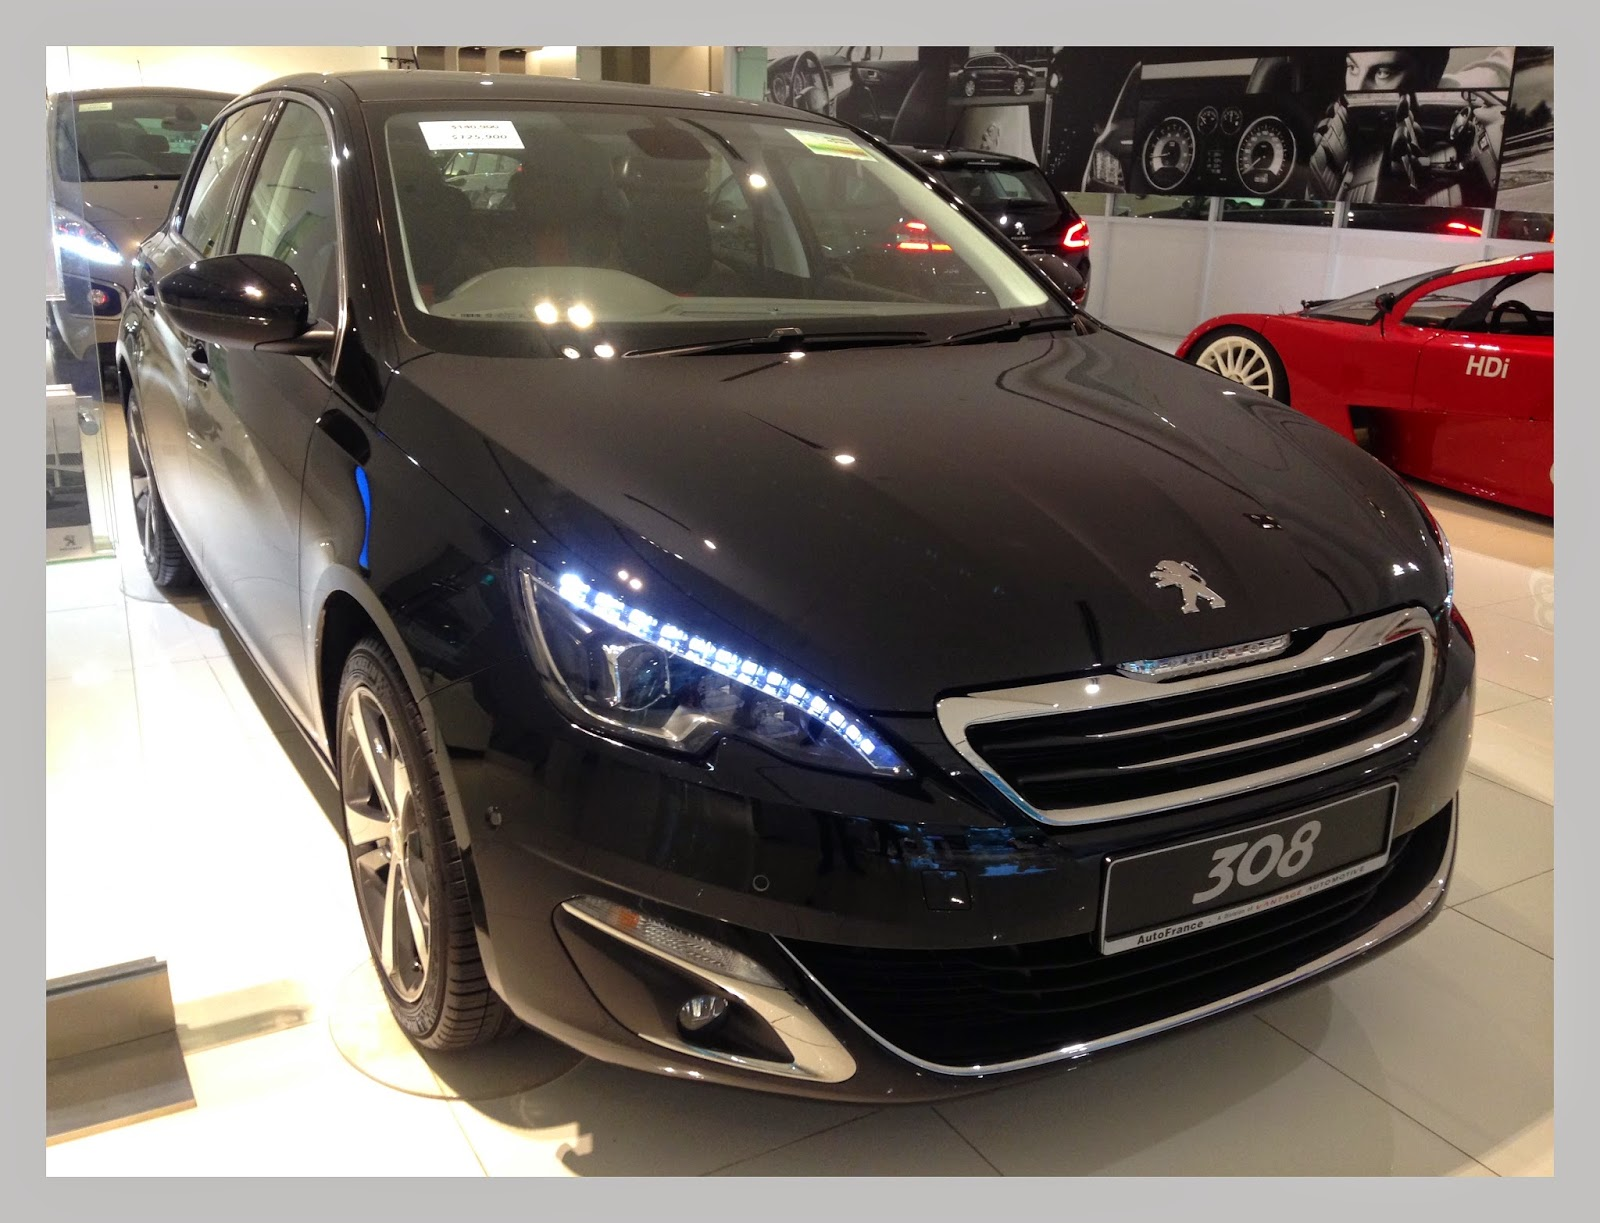 shaun owyeong peugeot 308 introduction test drive event. Black Bedroom Furniture Sets. Home Design Ideas